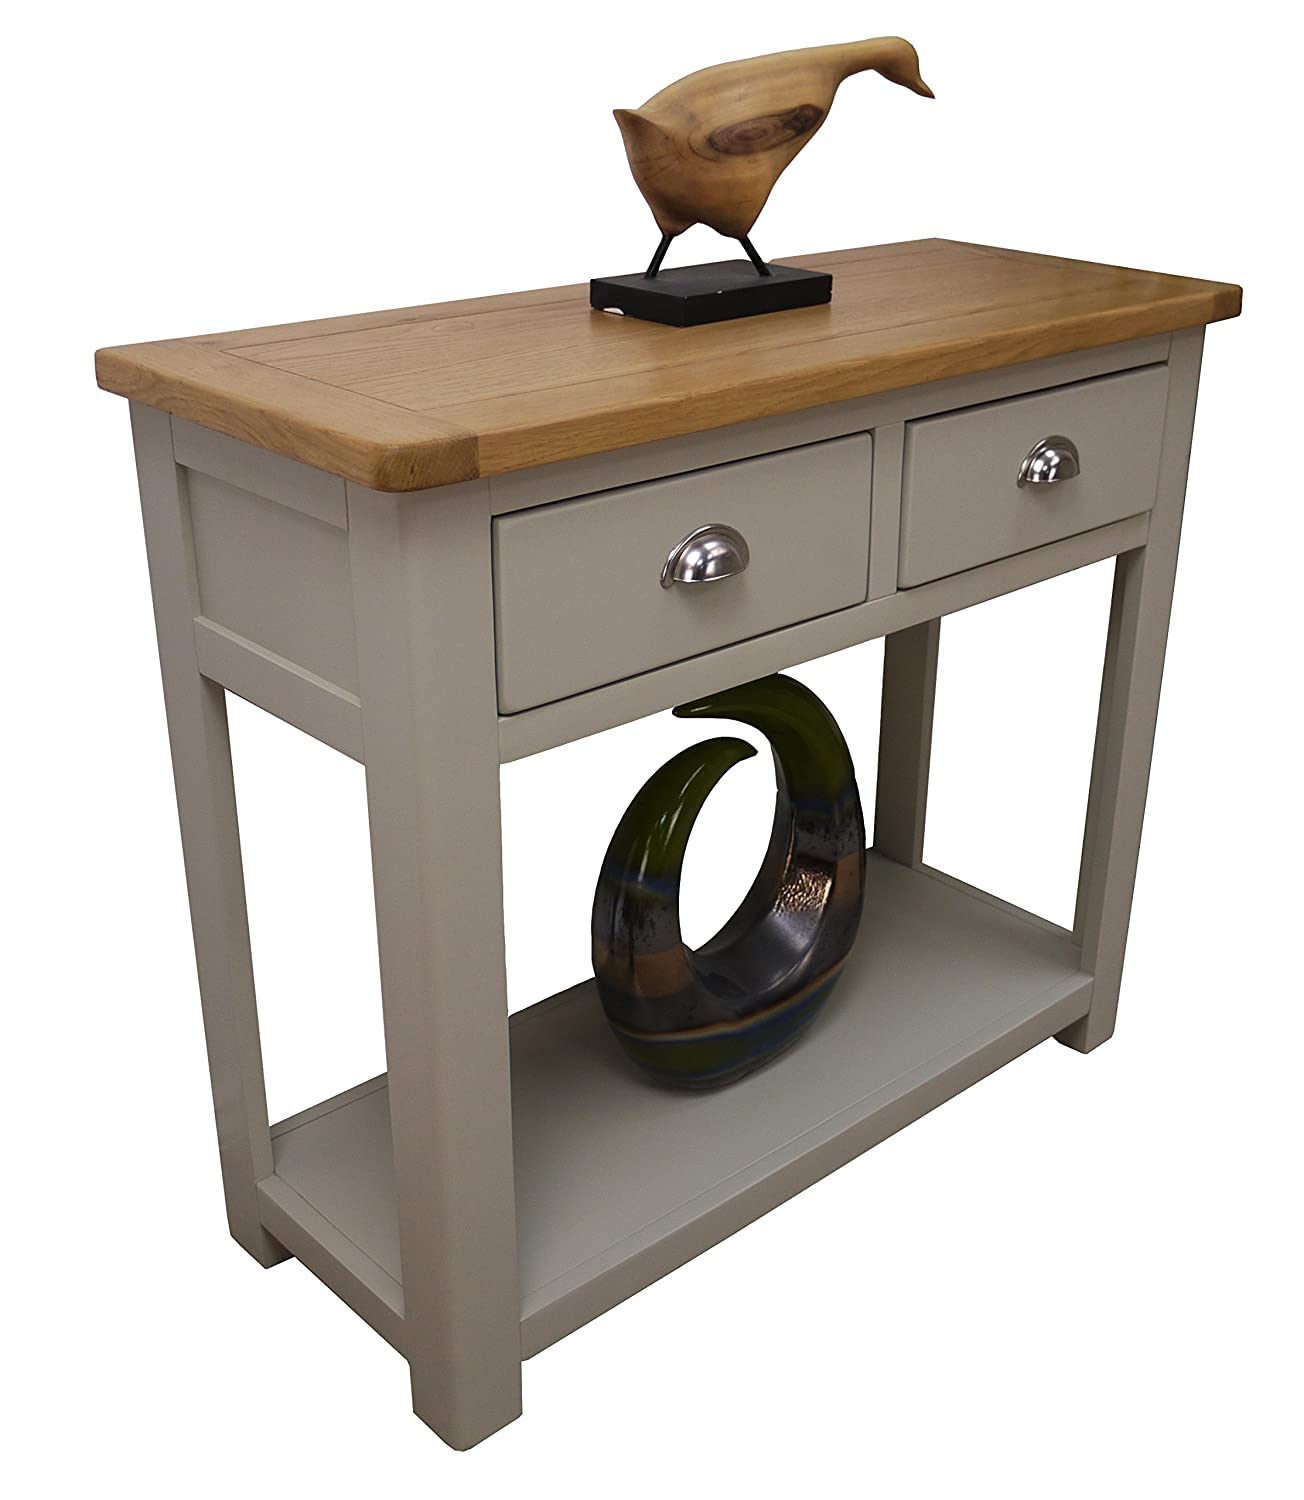 Aspen painted oak sage grey 2 drawer console table hall unit aspen painted oak sage grey 2 drawer console table hall unit with shelf amazon kitchen home geotapseo Gallery